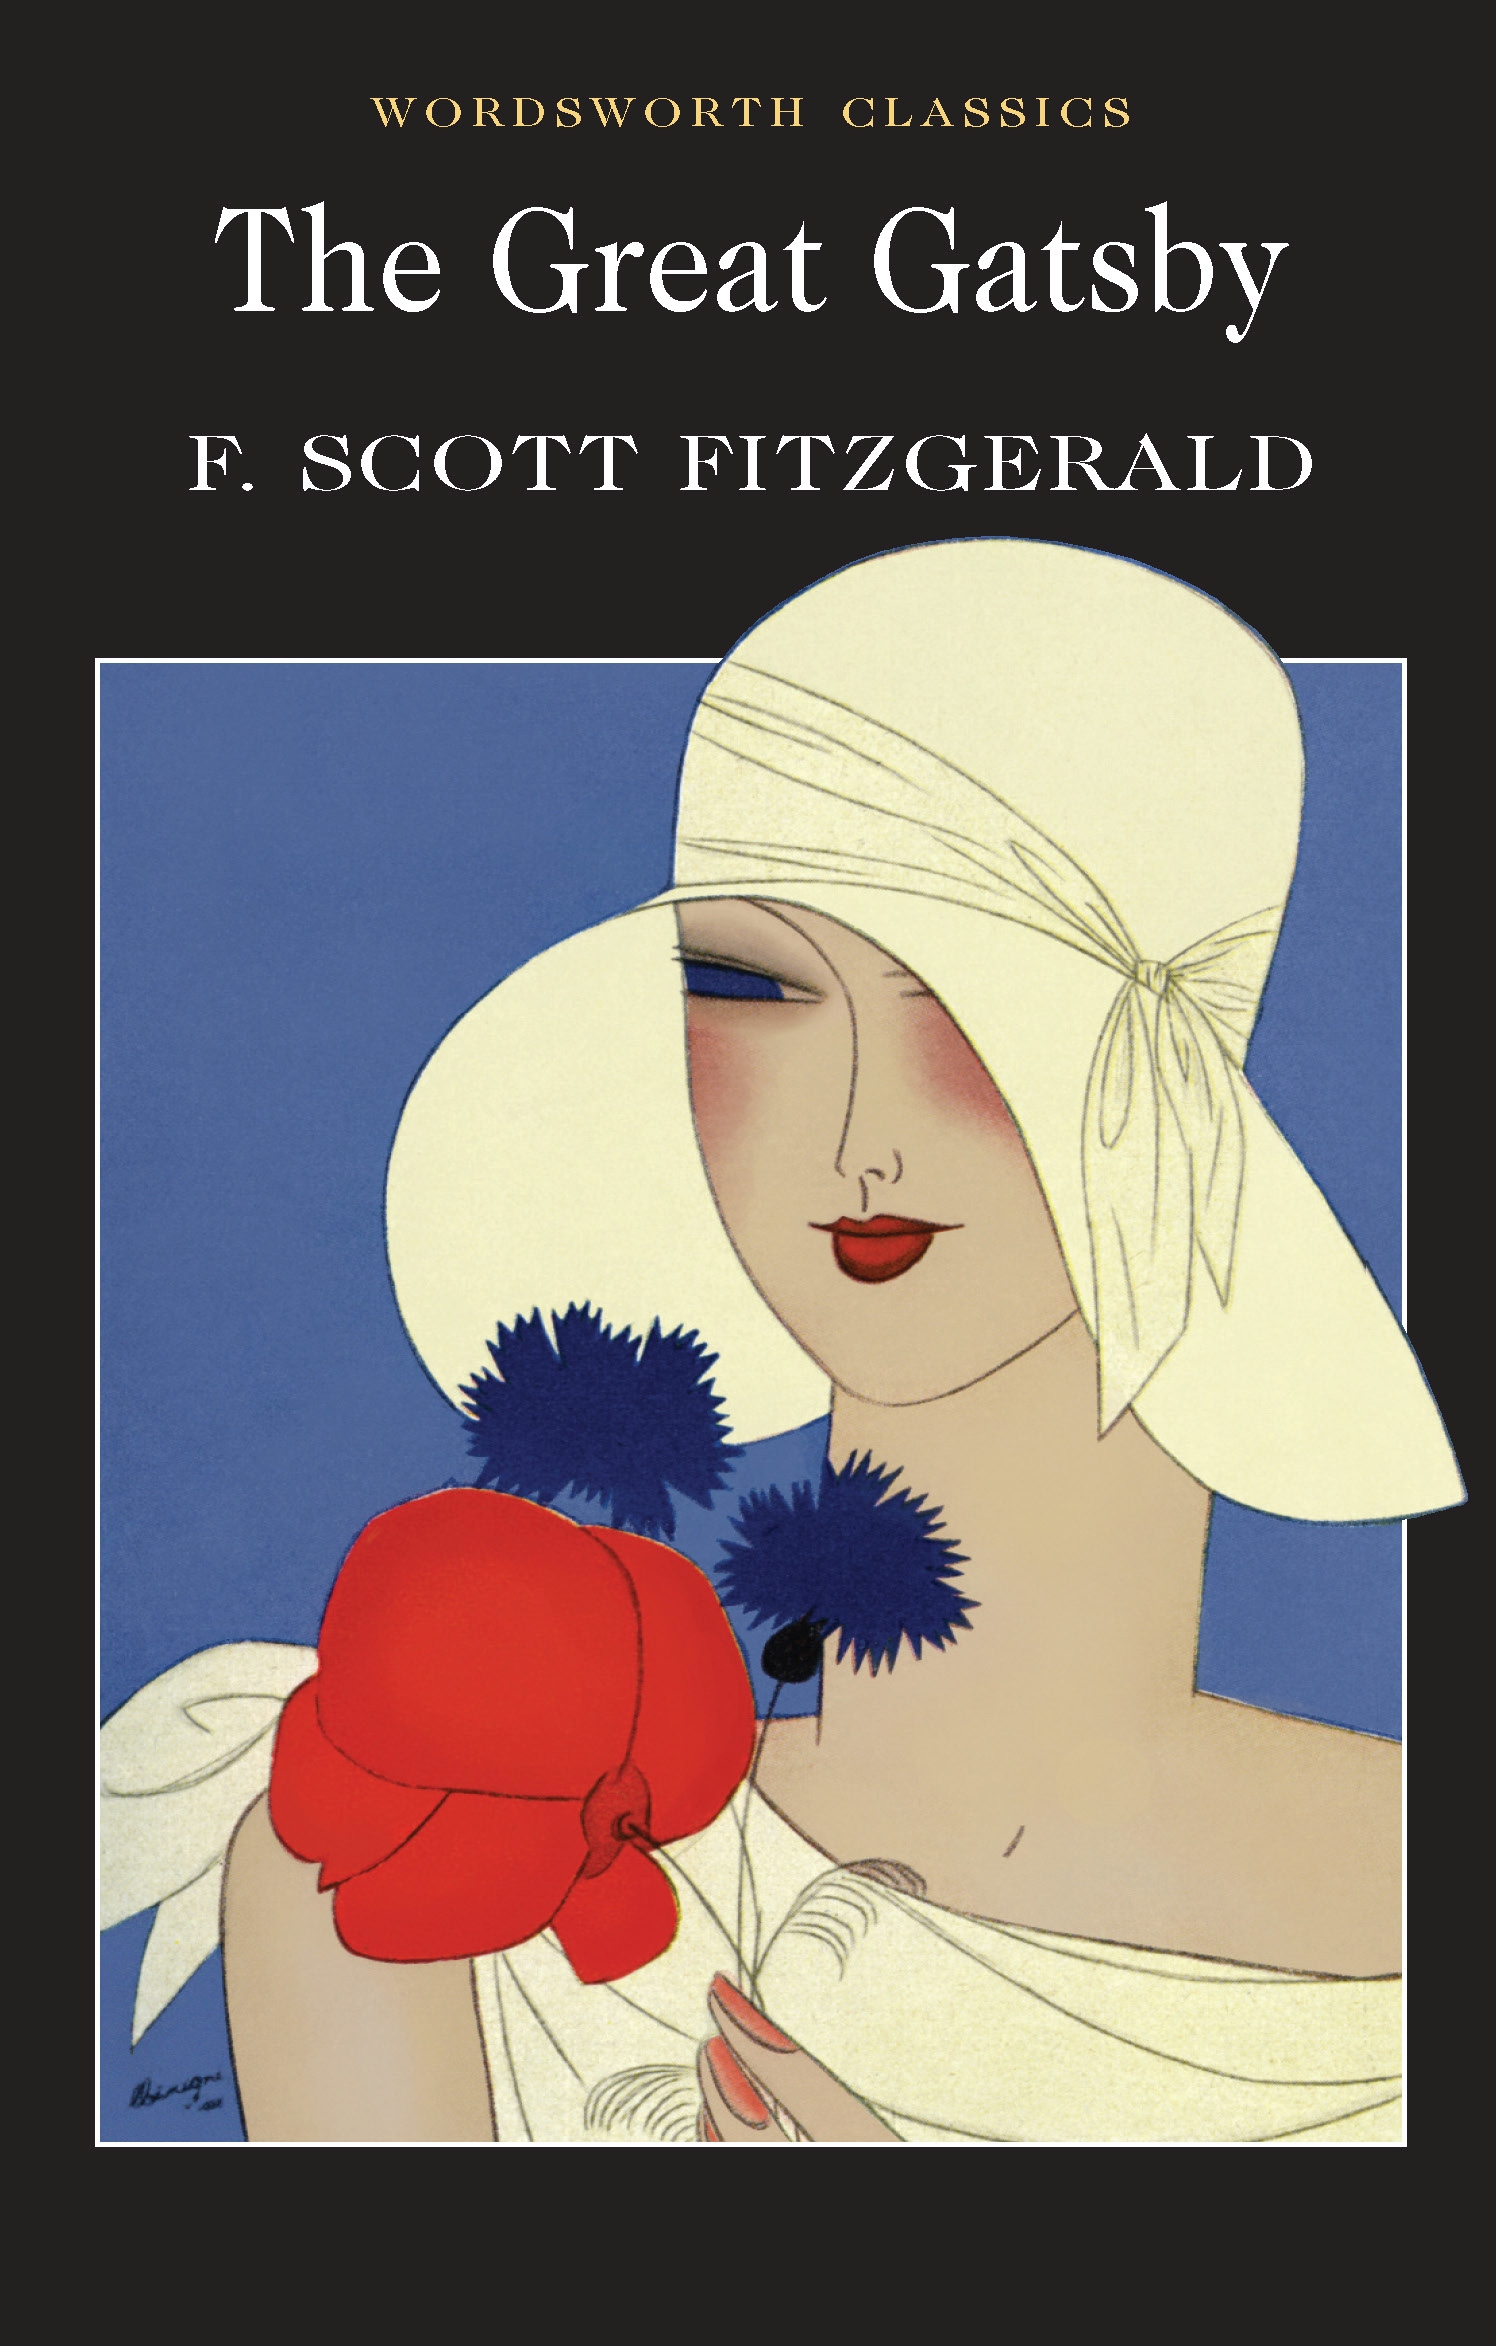 The 5 Best The Great Gatsby Covers